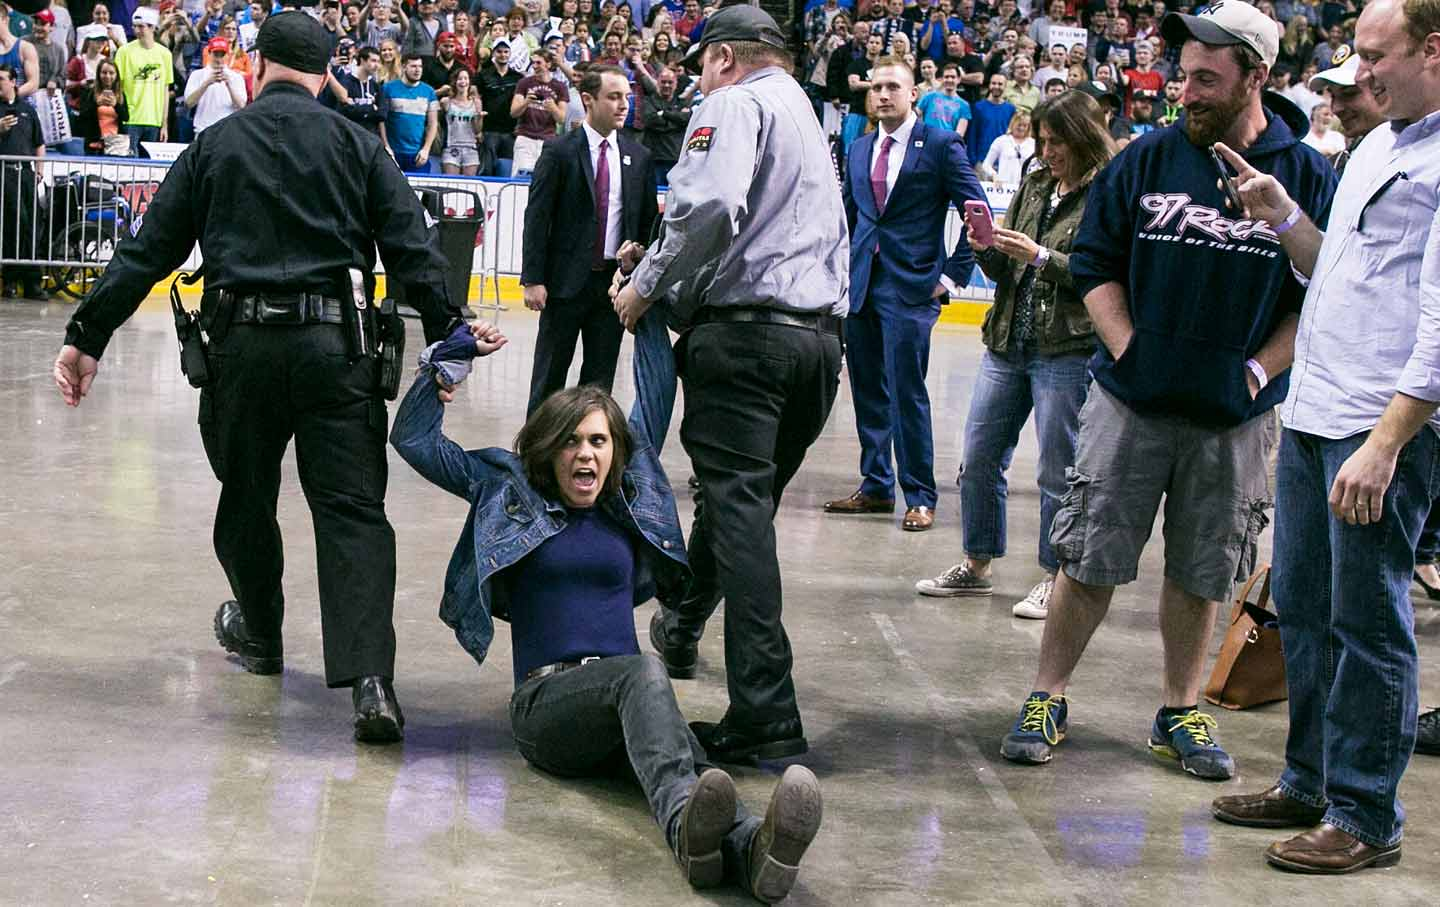 Protesters are removed from Trump rally in Buffalo